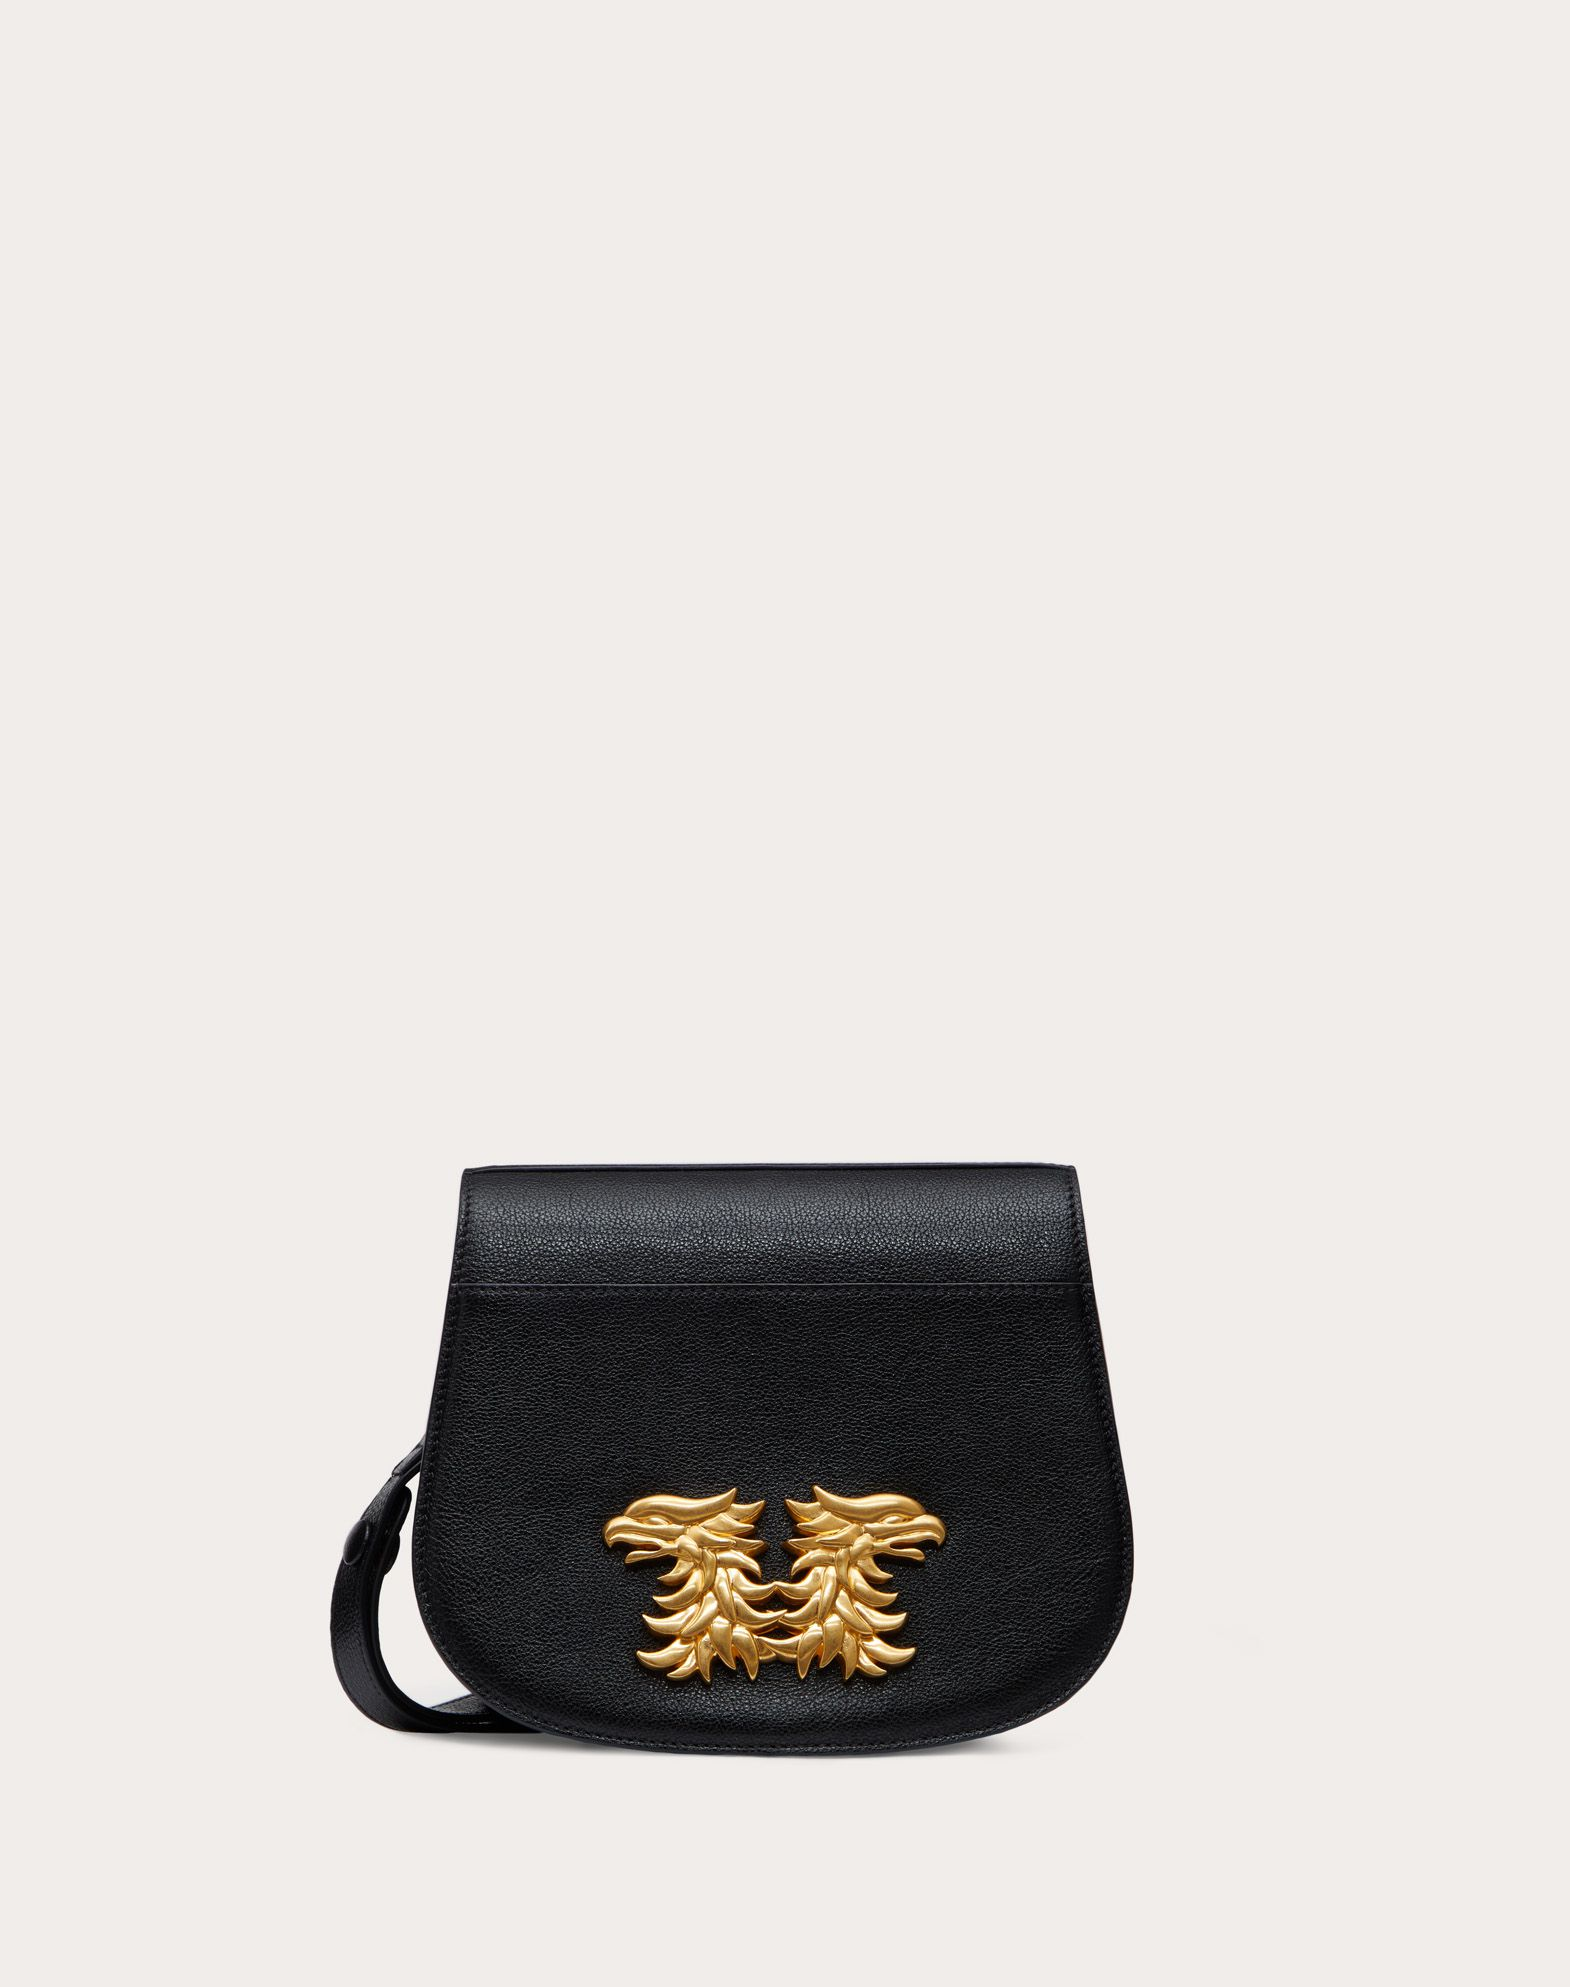 Buffalo Leather Saddle Bag with Griffin Accessory